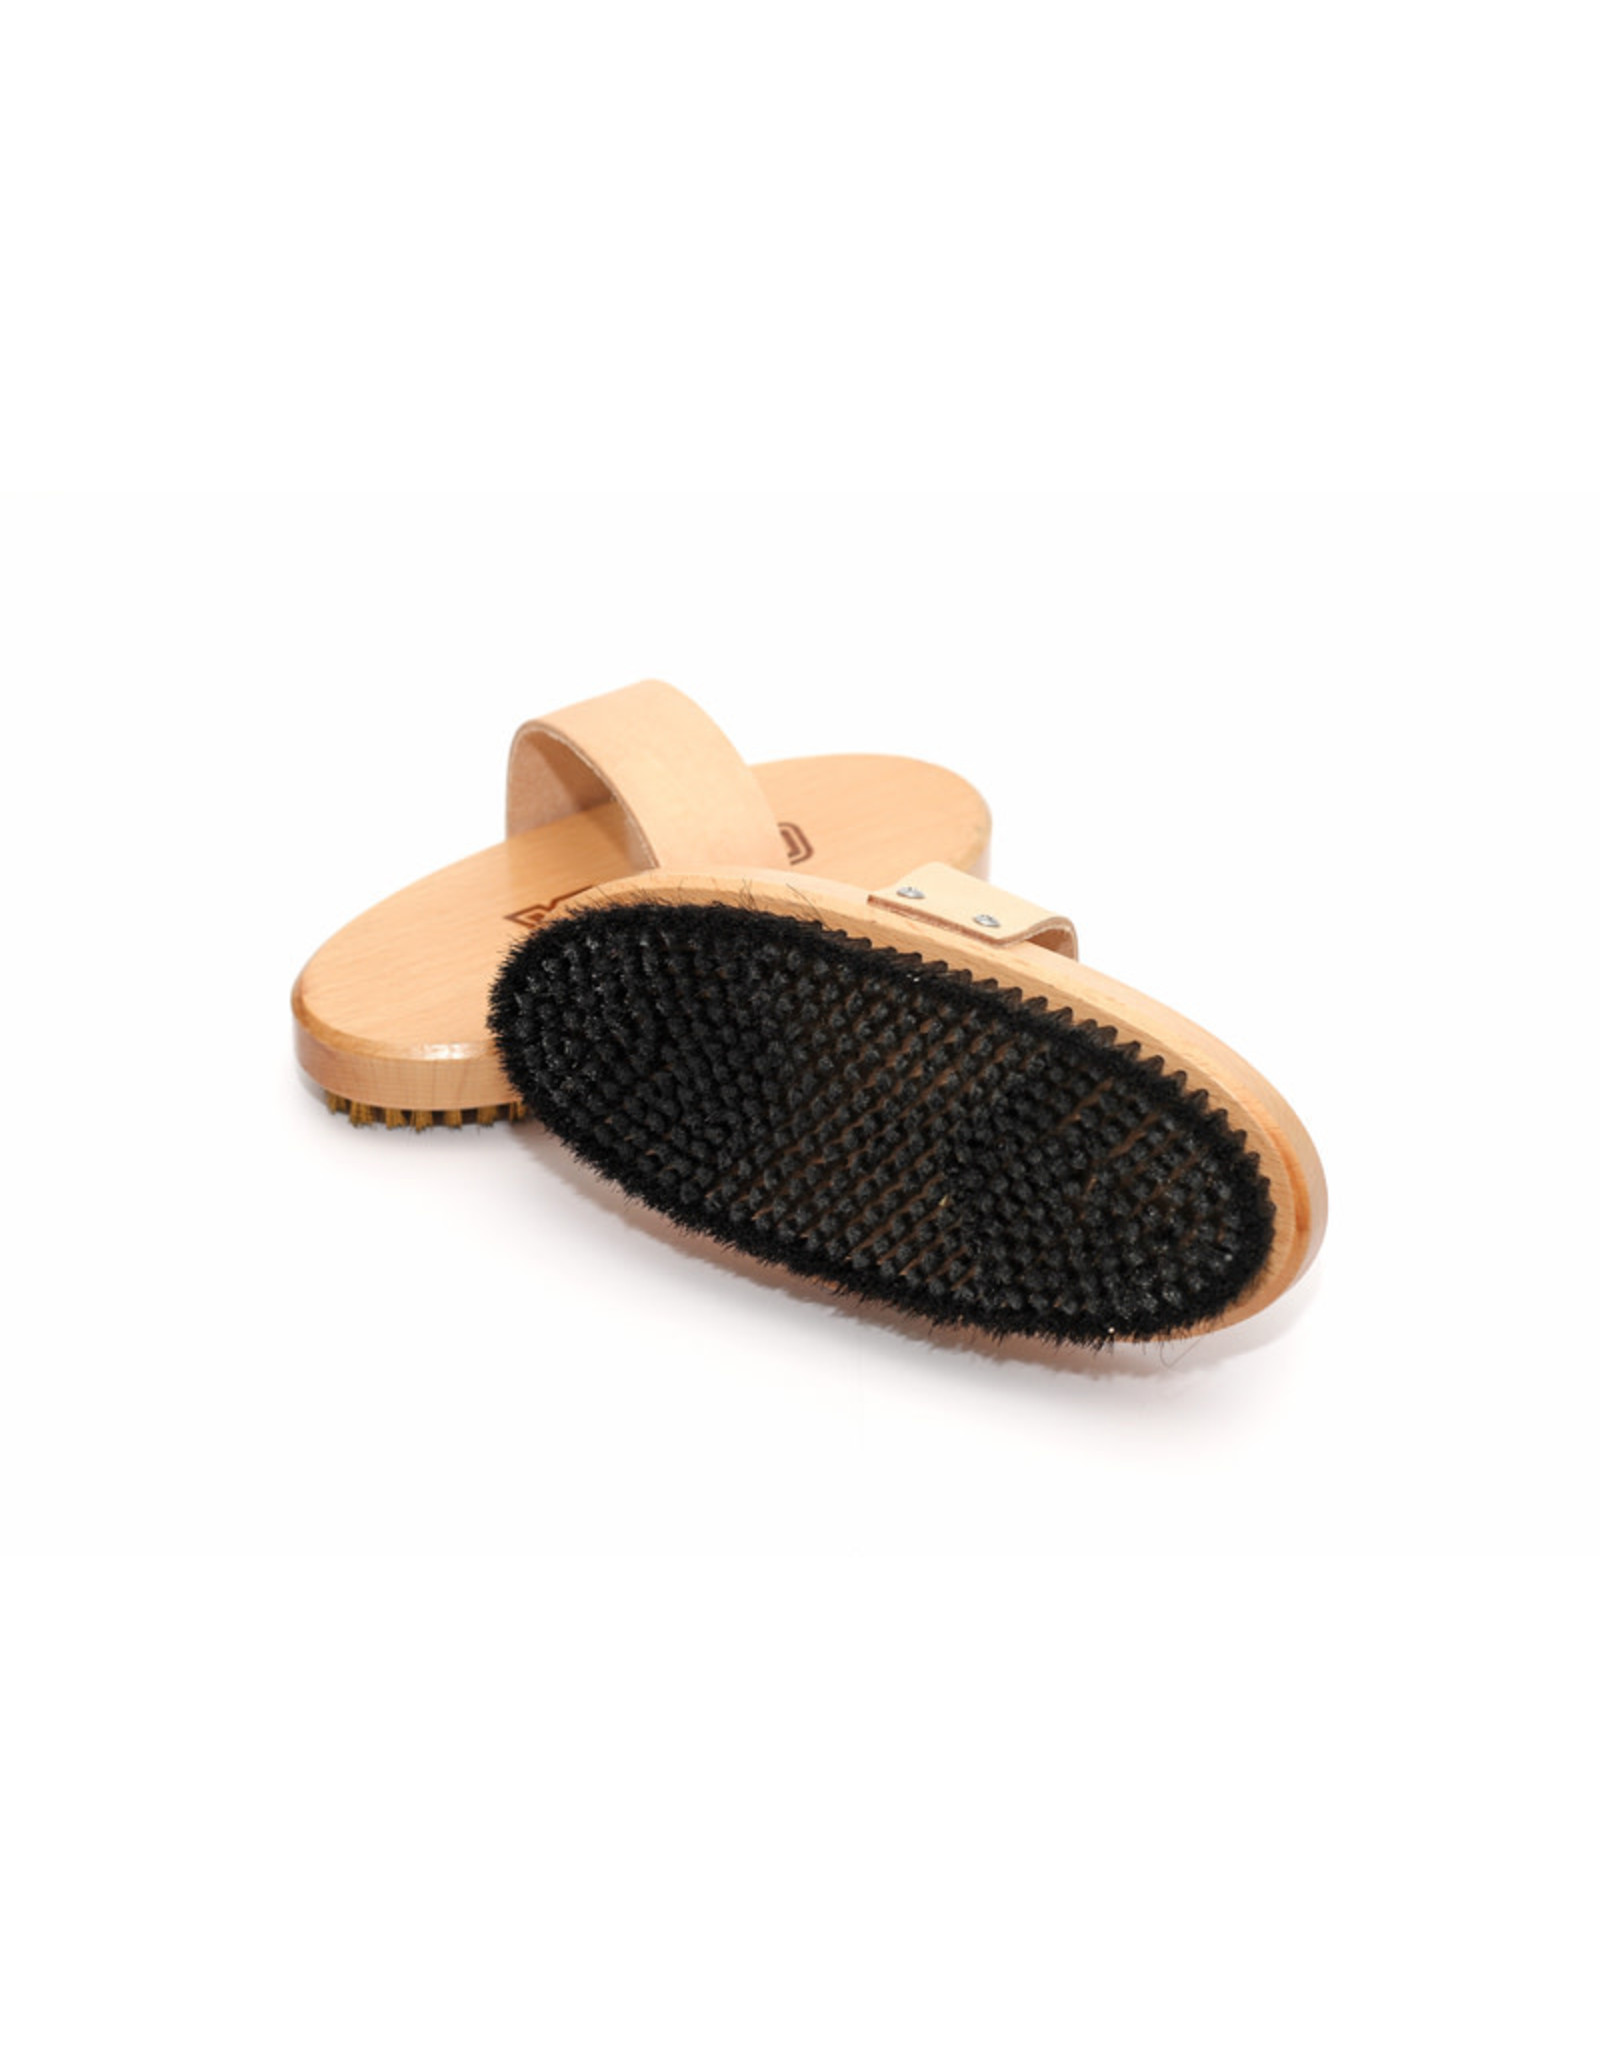 Optiwax Optiwax Brush Fine Steel Oval